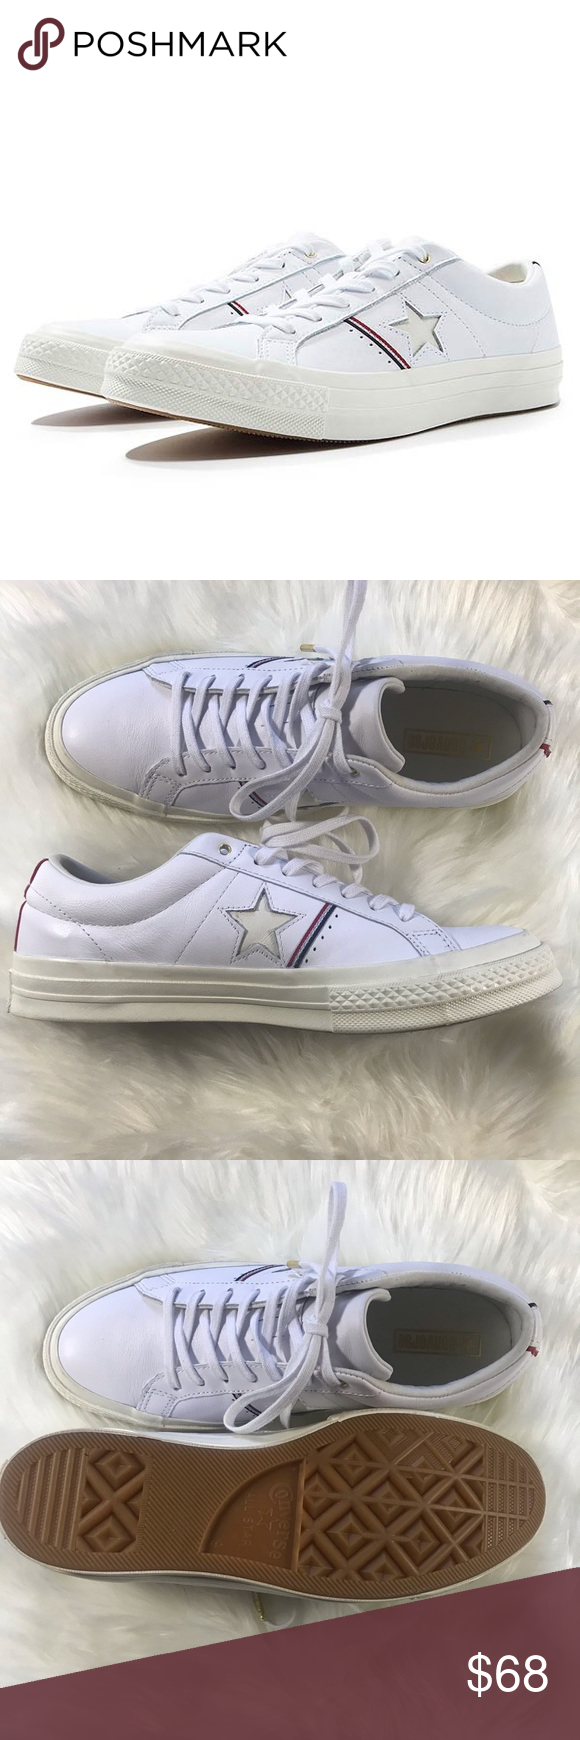 552013722953 Converse One Star White Leather OX Shoes sz 9 Brand new without box unisex Converse  One